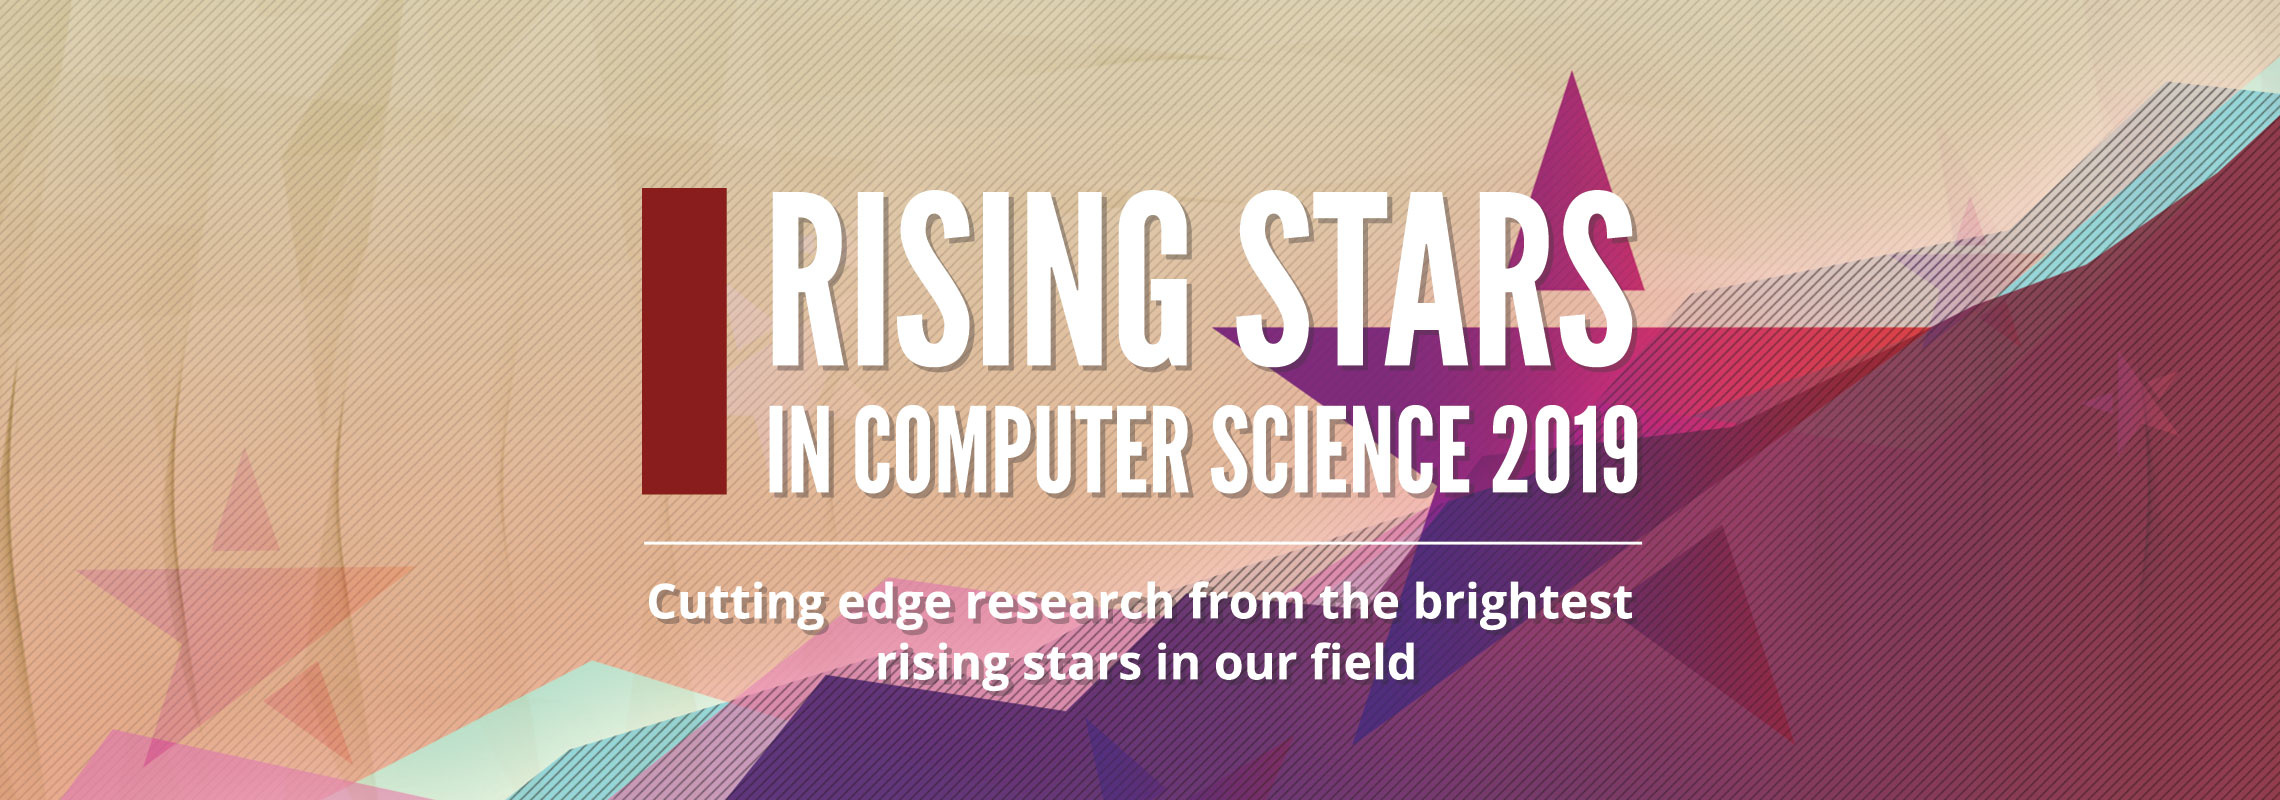 Rising Stars in Computer Science 2019: Cutting edge research from the brightest rising stars in our field